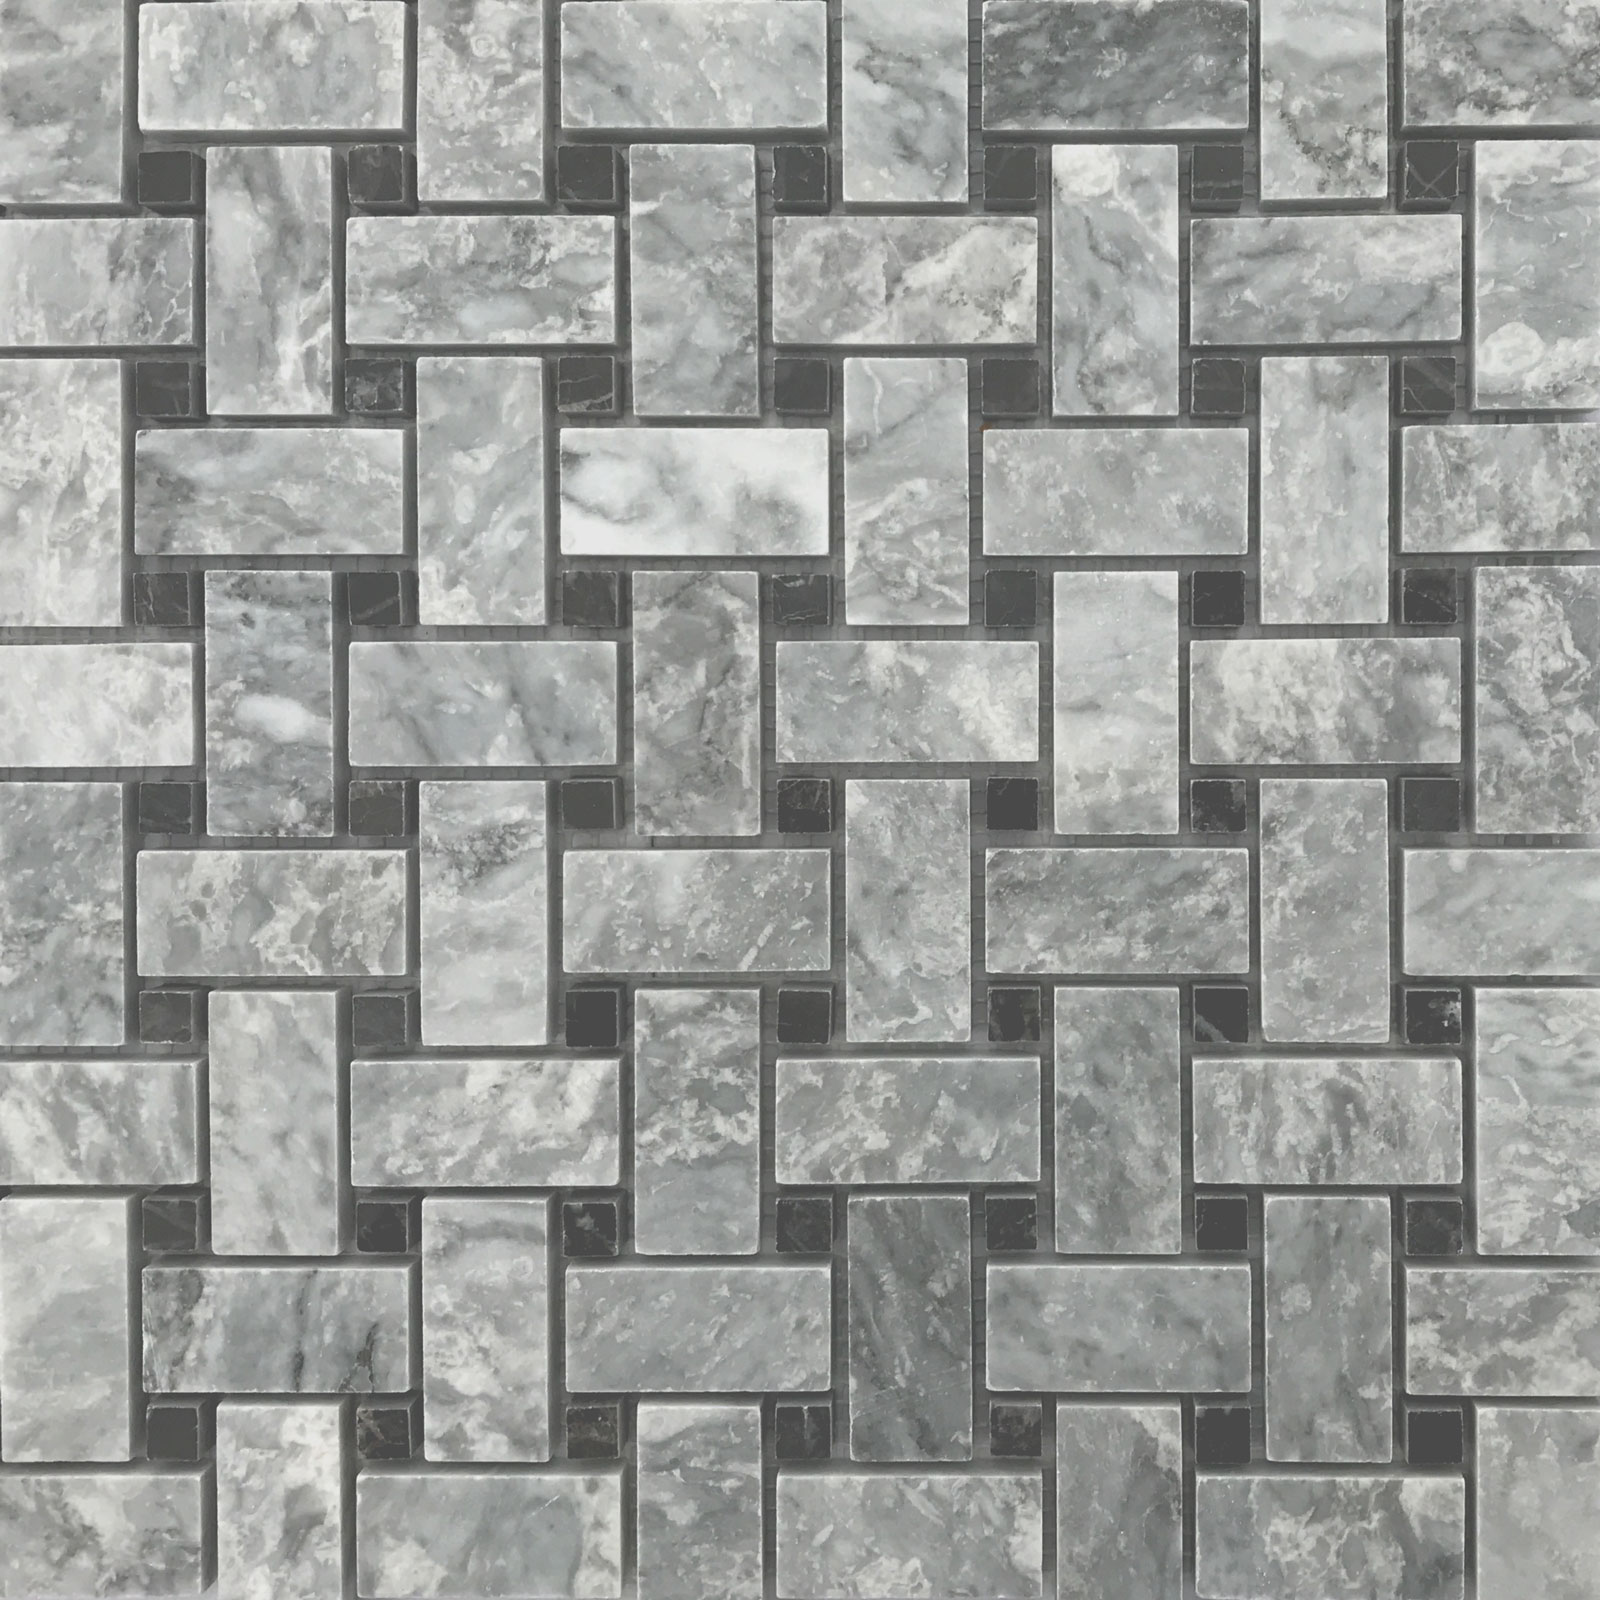 Basketweave Mosaic Chelsea Grey With Black Dot Marble Polished